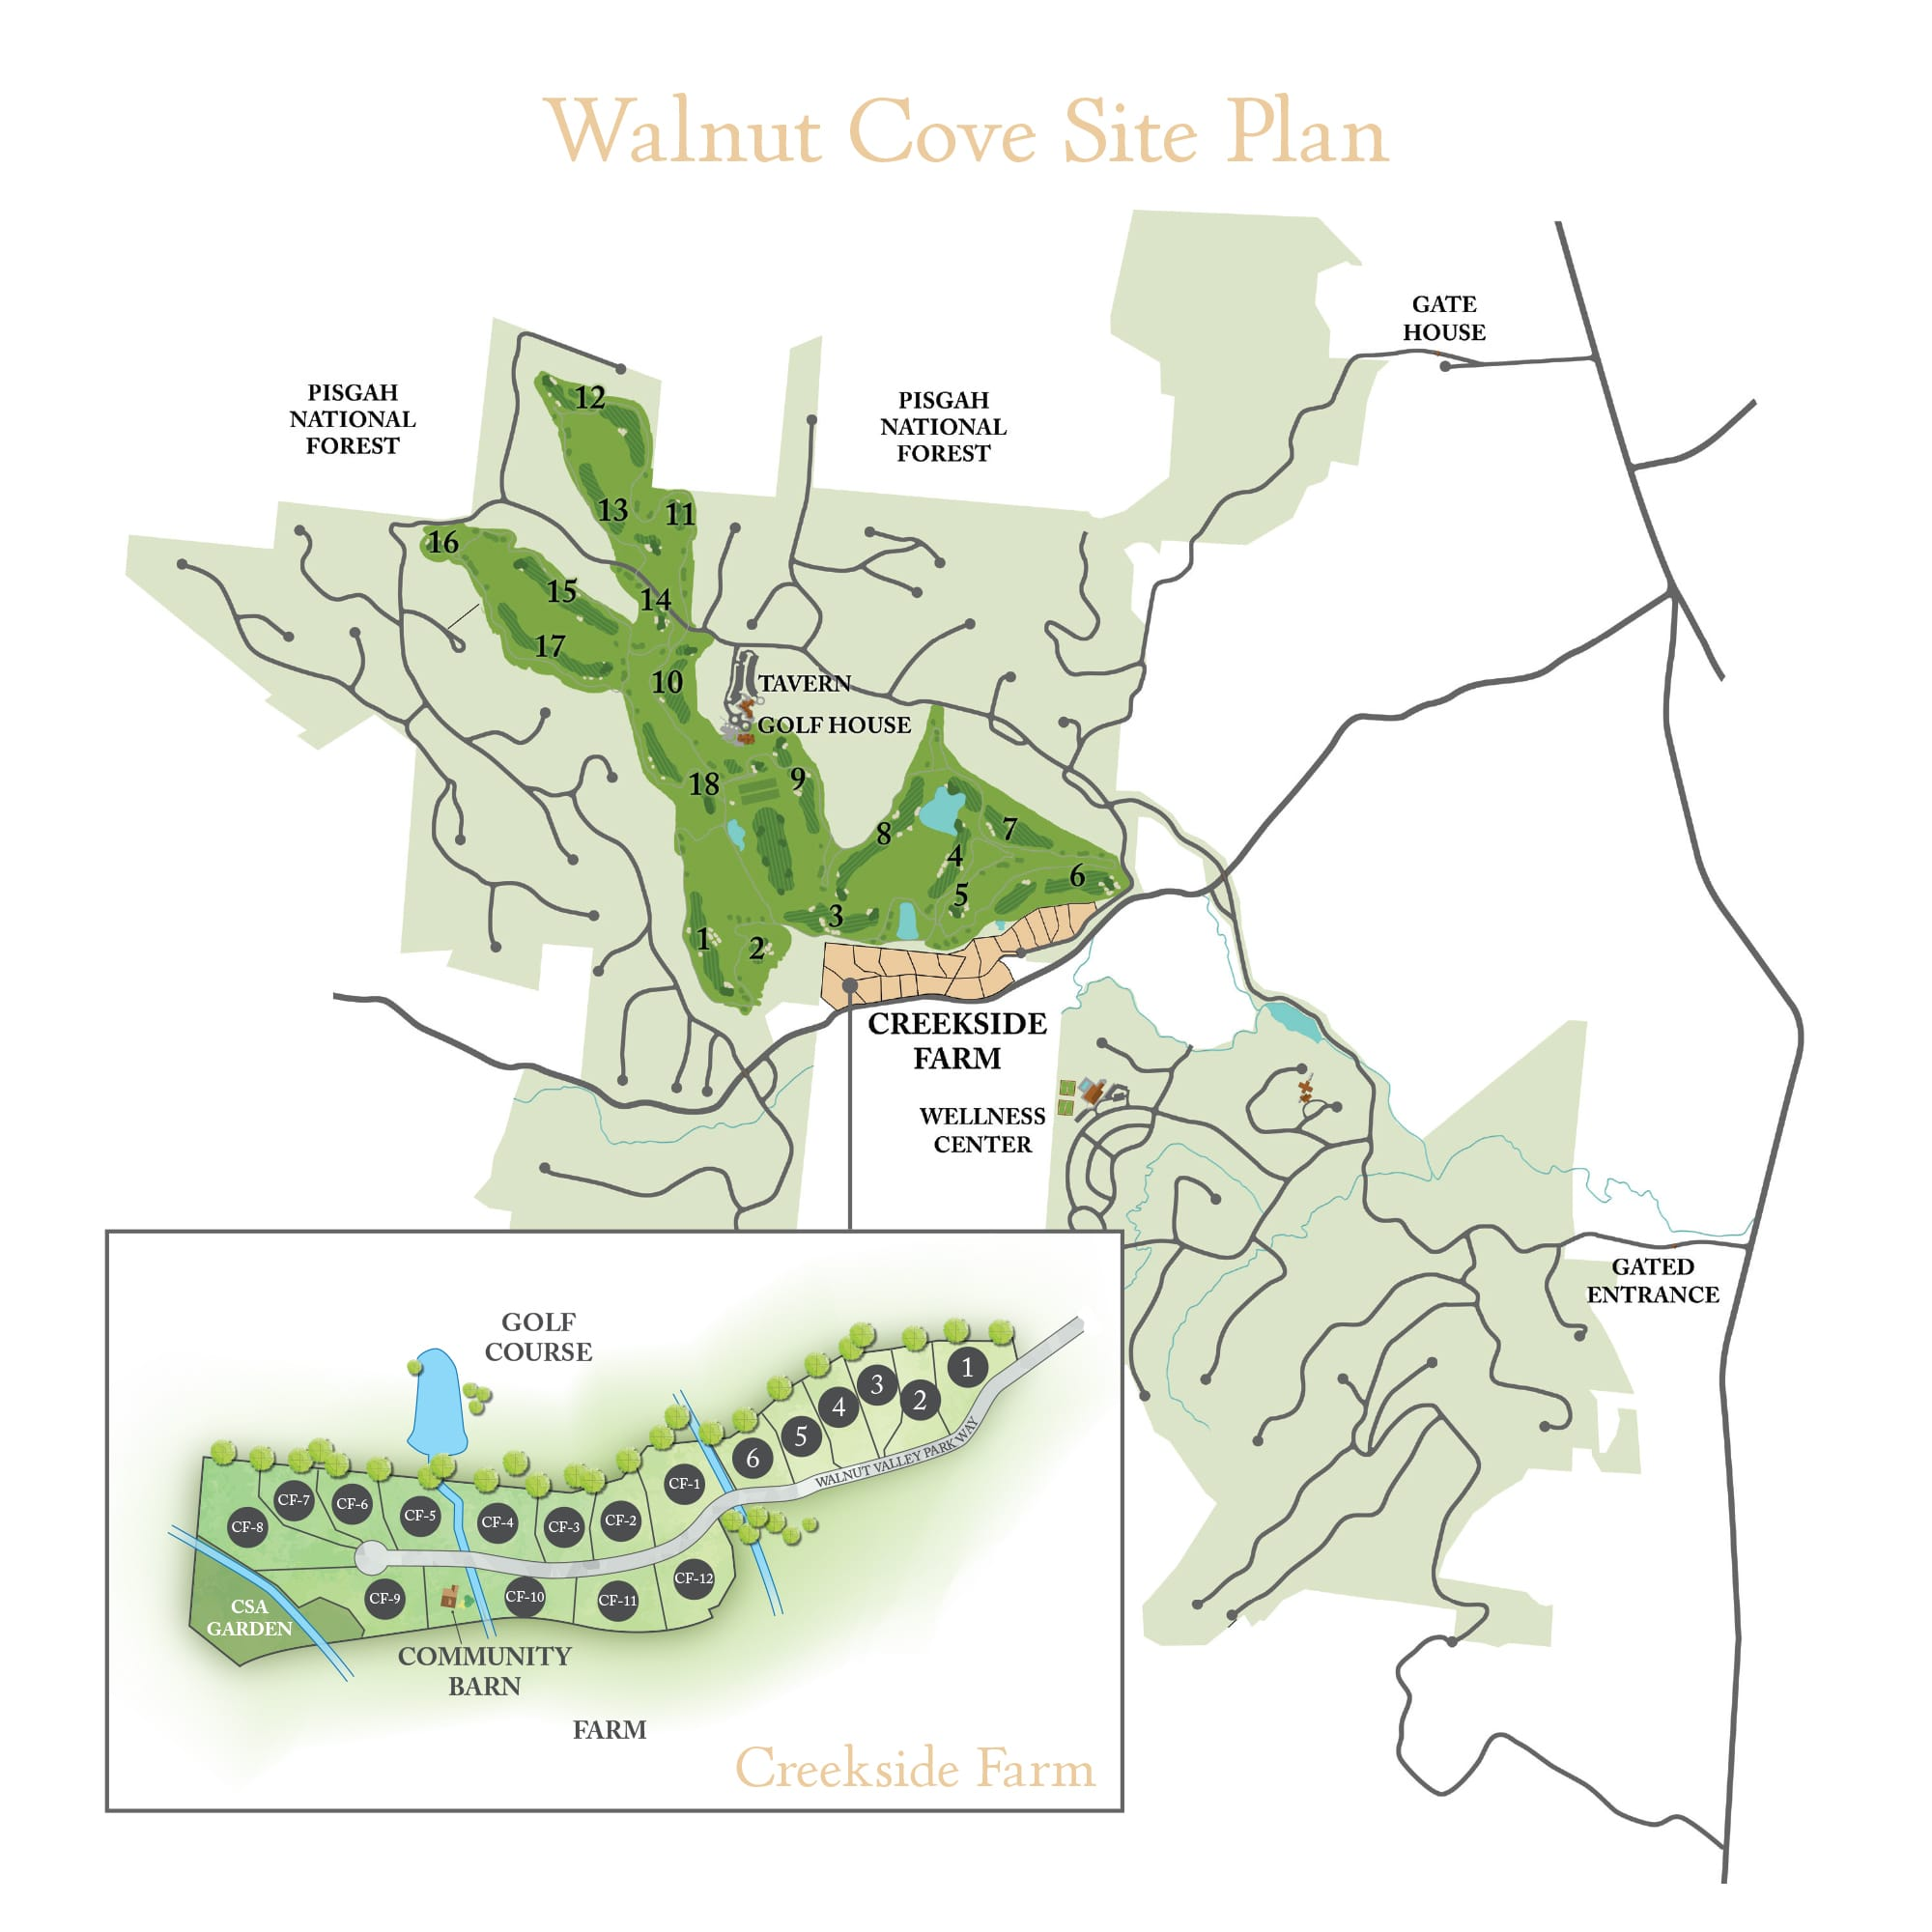 The Cliffs at Walnut Cove Site Plan